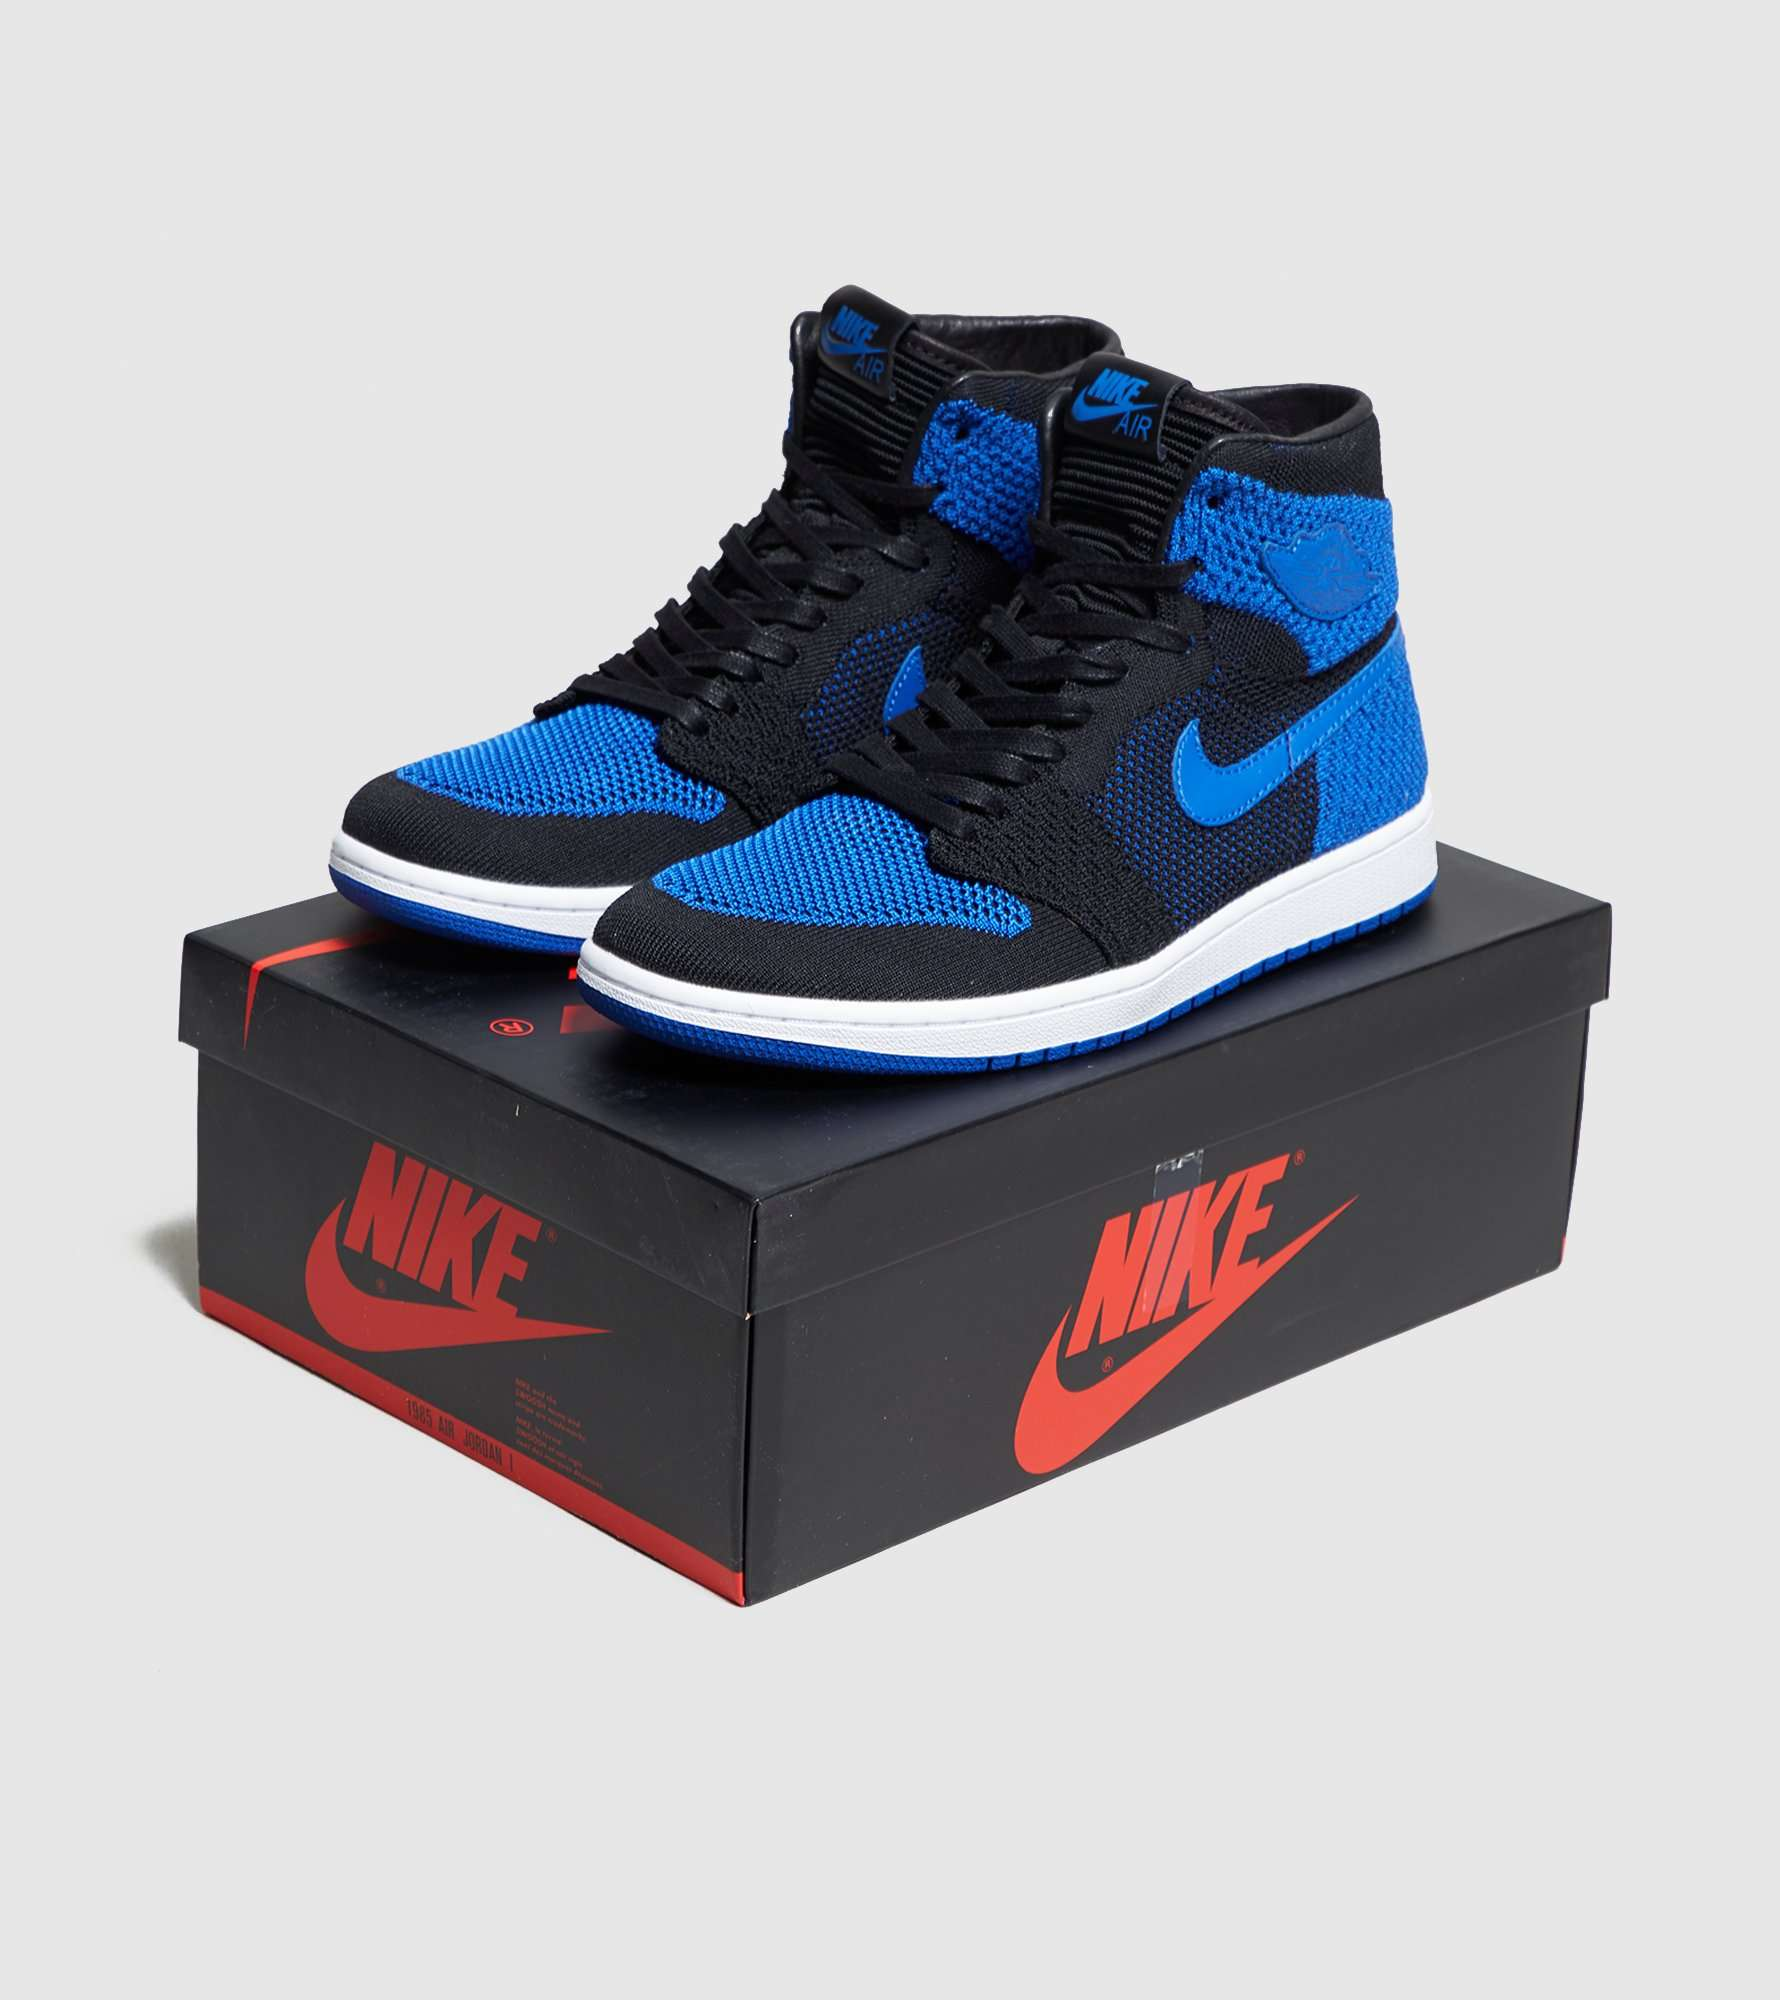 Jordan 1 Retro Flyknit 'Royal Blue'